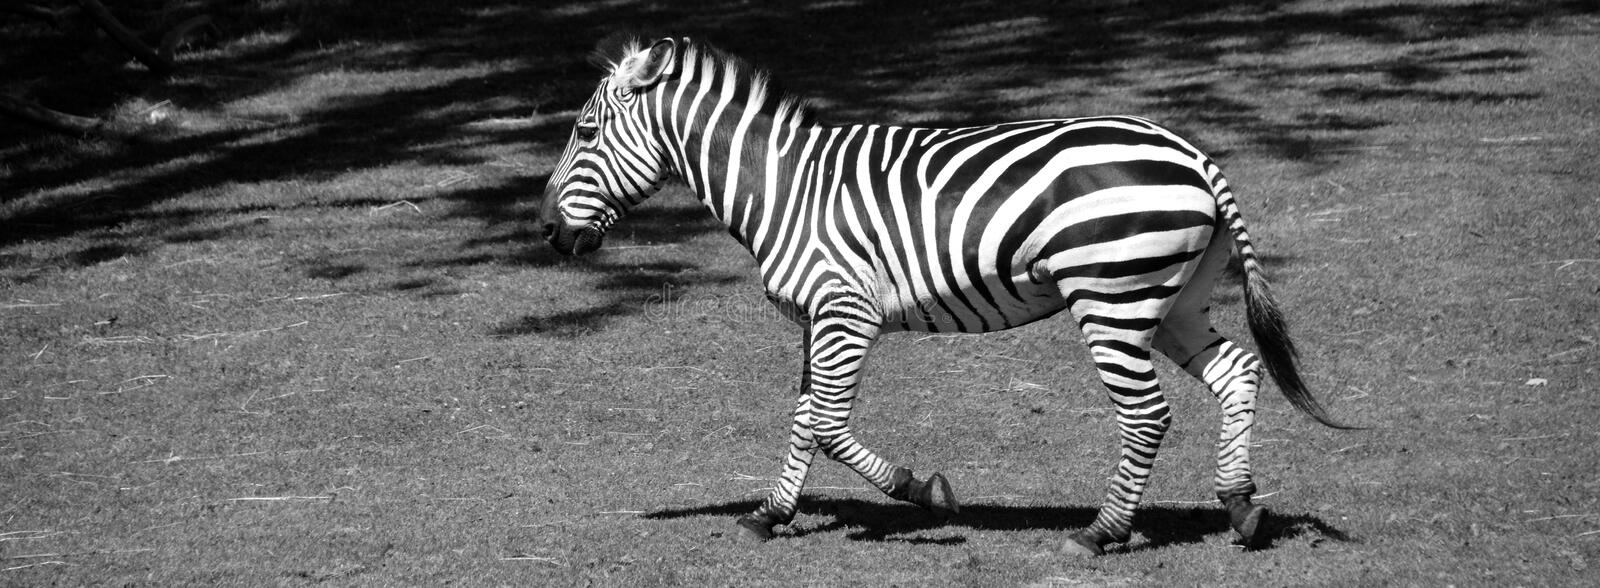 Zebras are several species of African equids. Horse family united by their distinctive black and white stripes stock photography